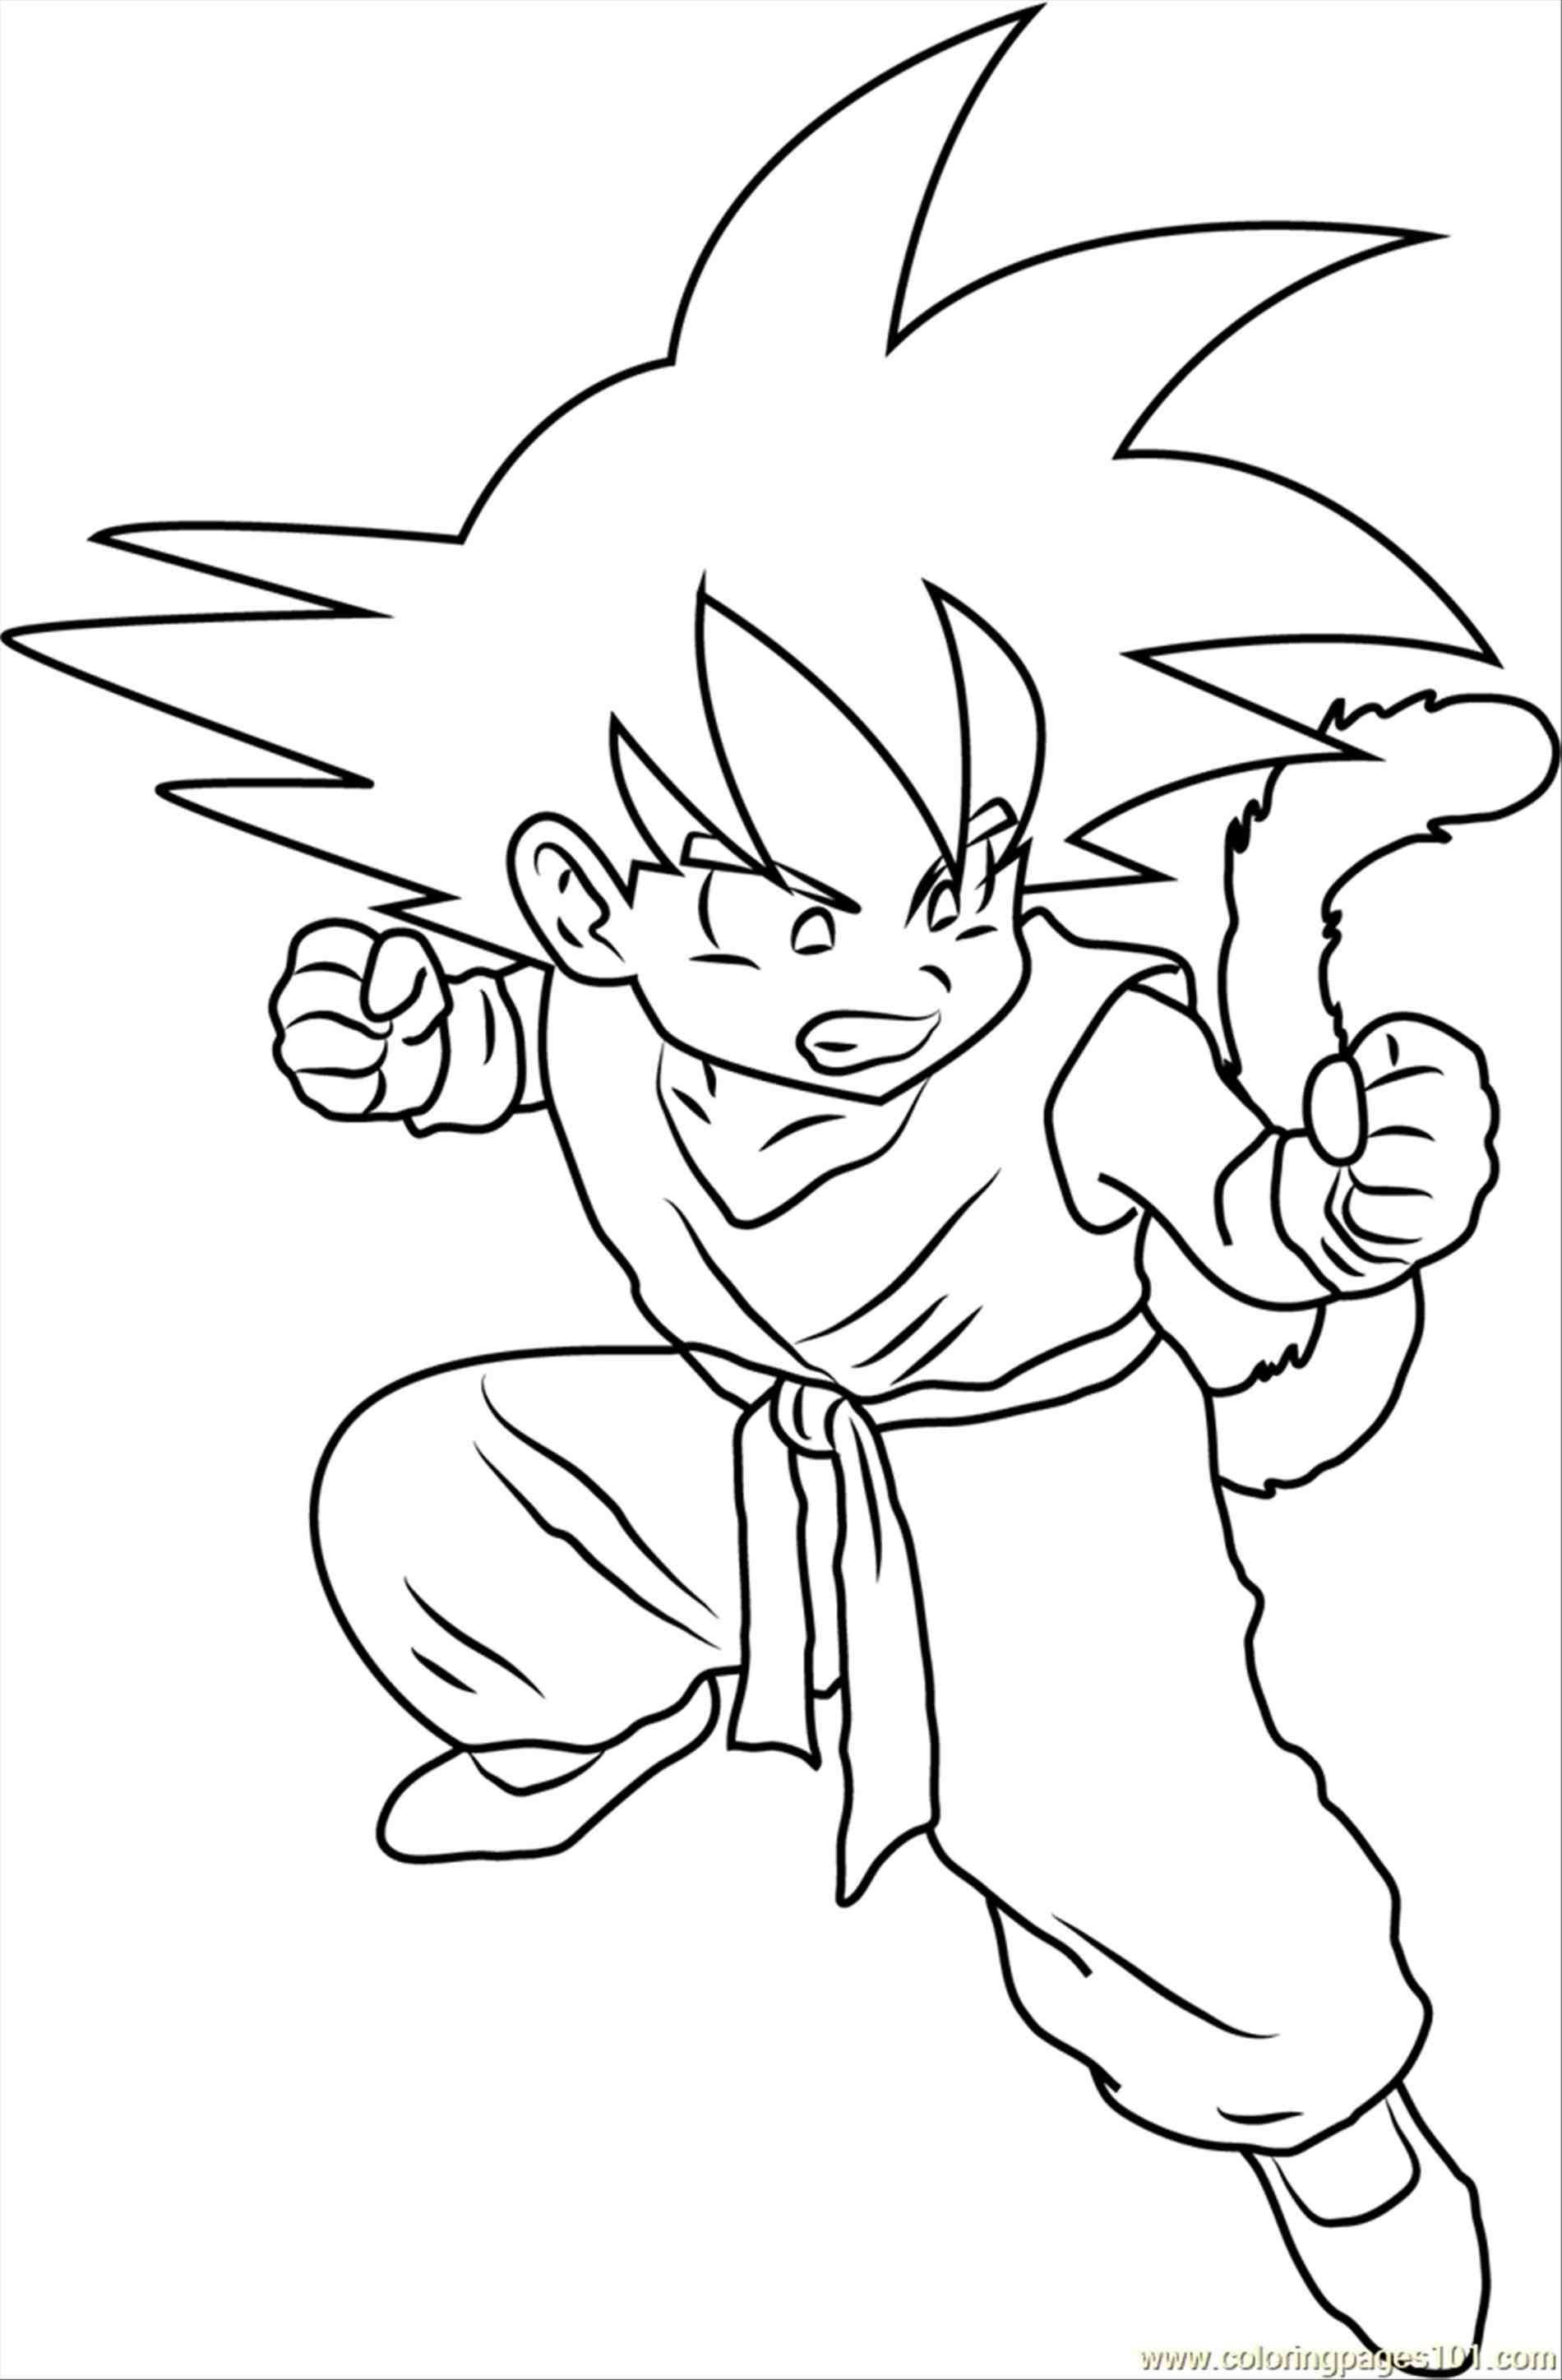 kd coloring pages kd 7 coloring pages kd coloring pages